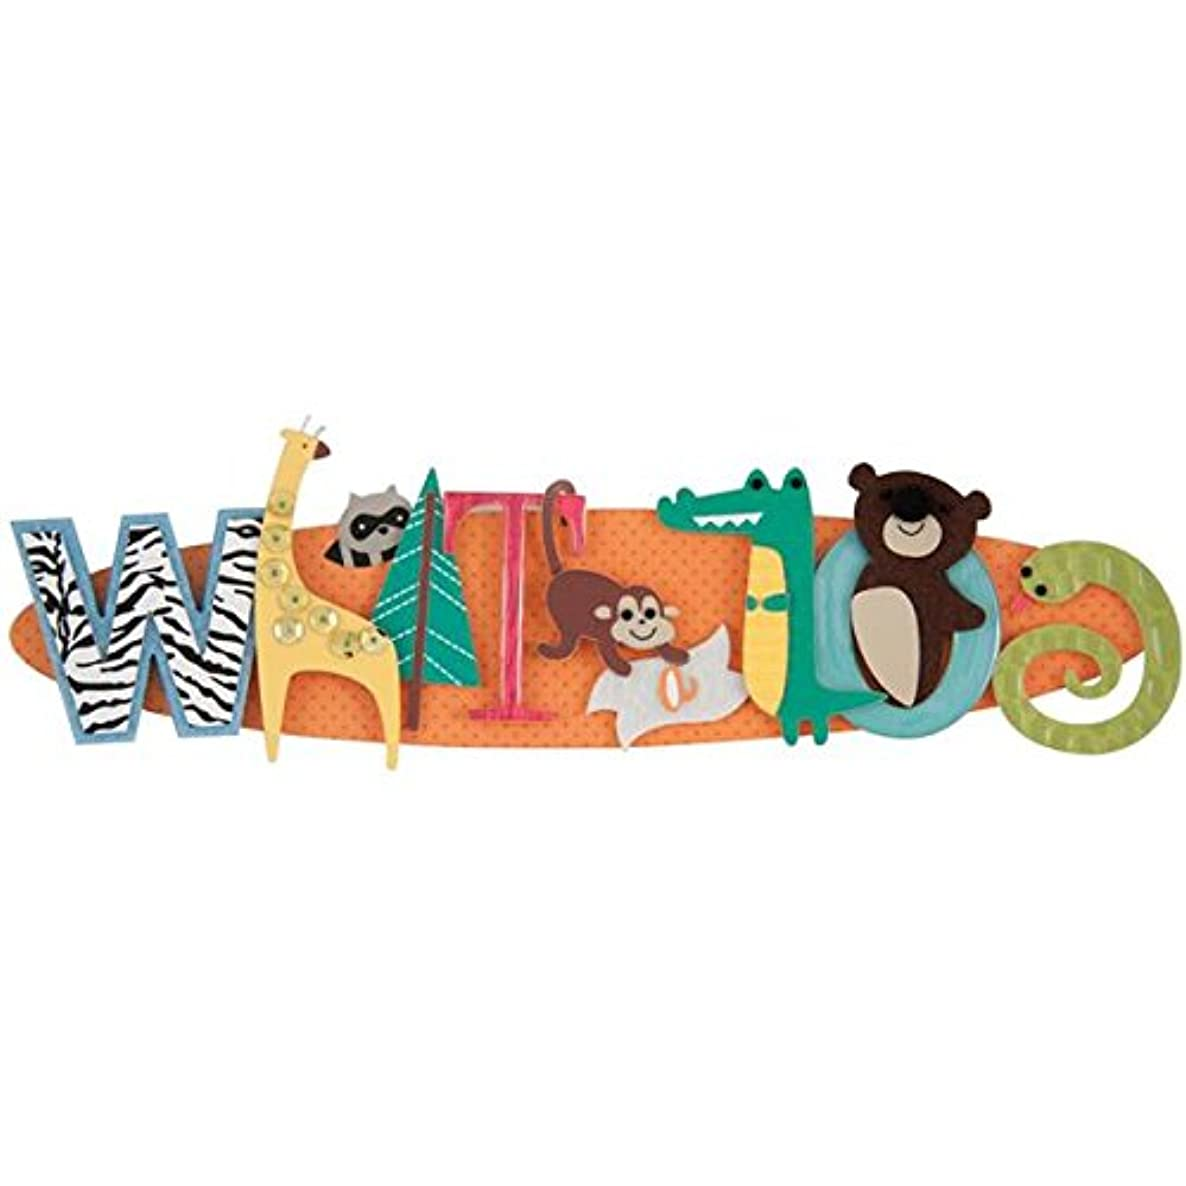 Karen Foster Design Scrapbooking and Craft Embellishment Stacked Statement, What a Zoo